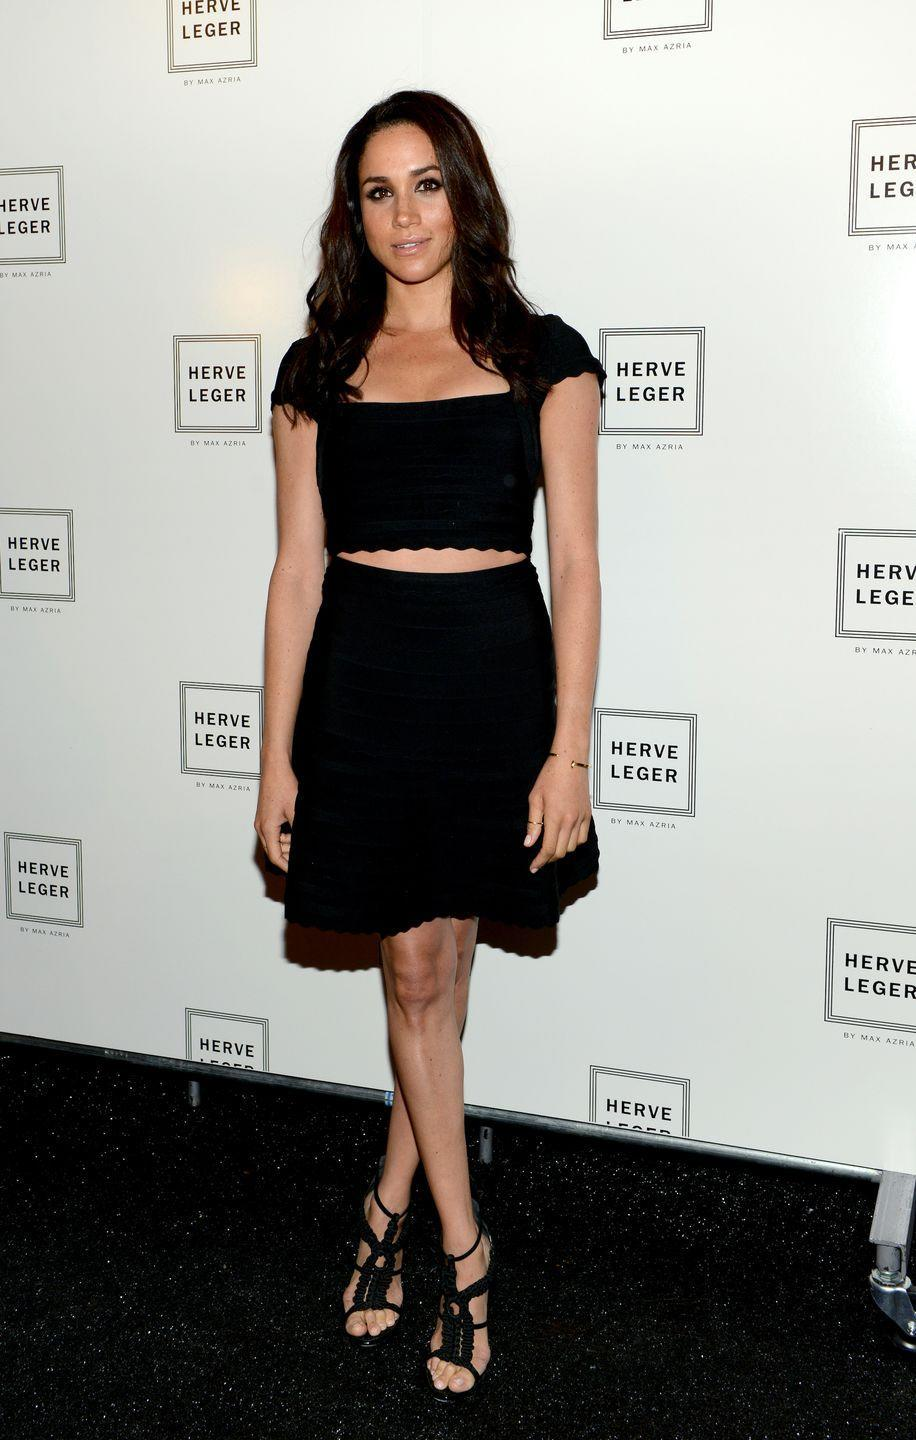 <p>This black Herve Leger dress is a fitting outfit to attend the Herve Leger By Max Azria show during Spring 2014 in September 2013</p>